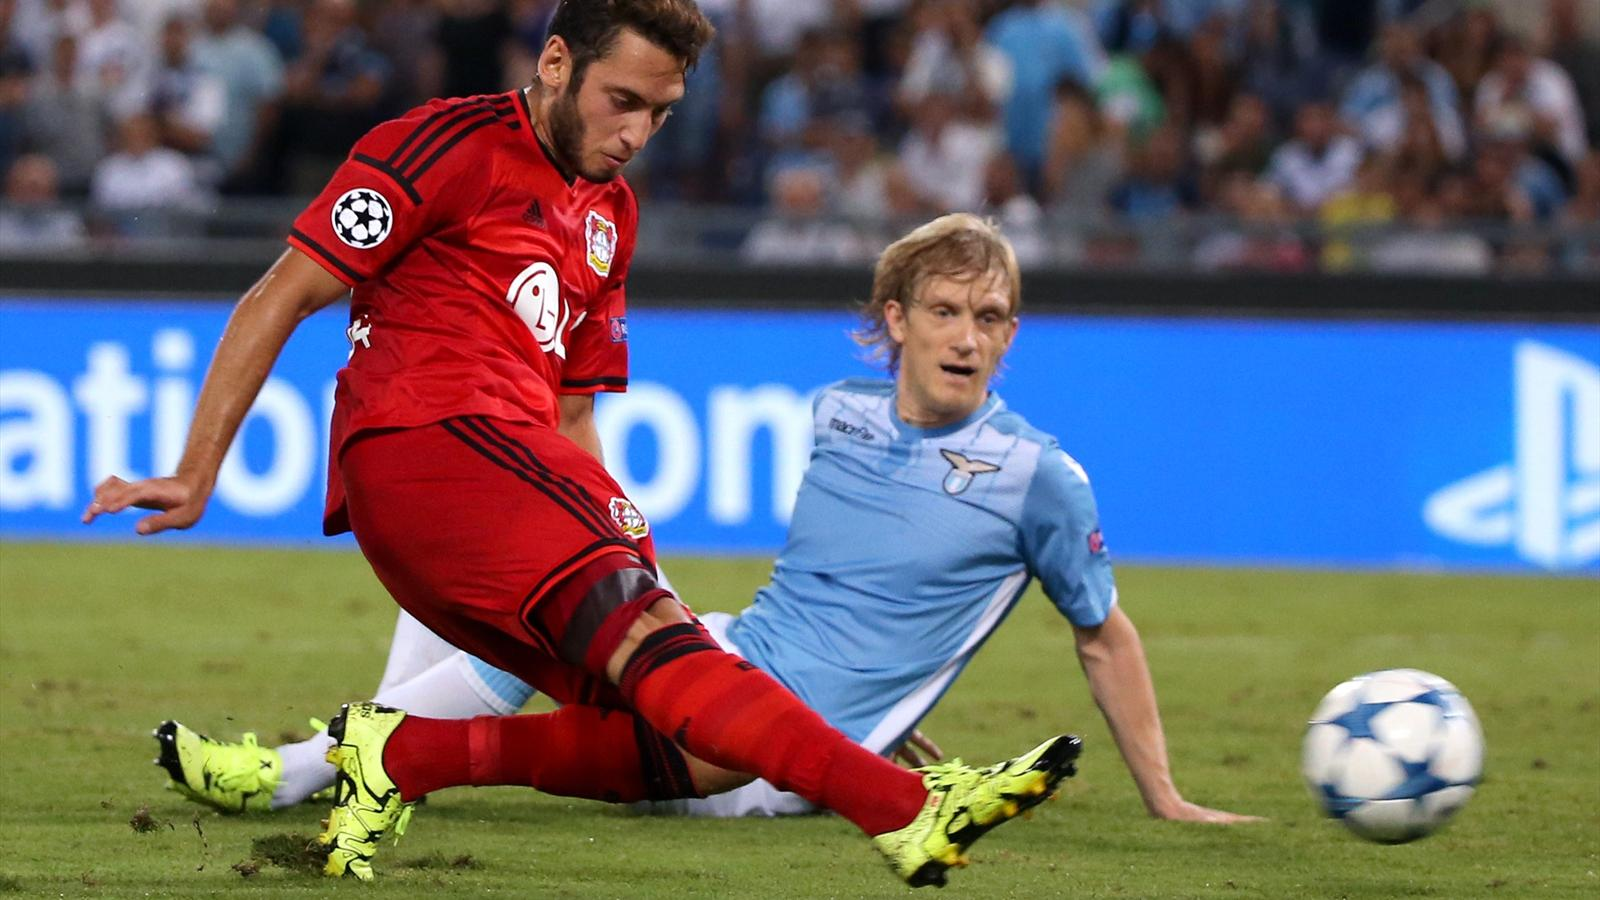 Bayer Leverkusen's Hakan Calhanoglu scores a goal which is then disallowed, as Lazio's Dusan Basta (R) watches during their Champions League play-off soccer match at the Olympic stadium in Rome, Italy August 18, 2015. REUTERS/Alessandra Bianchi